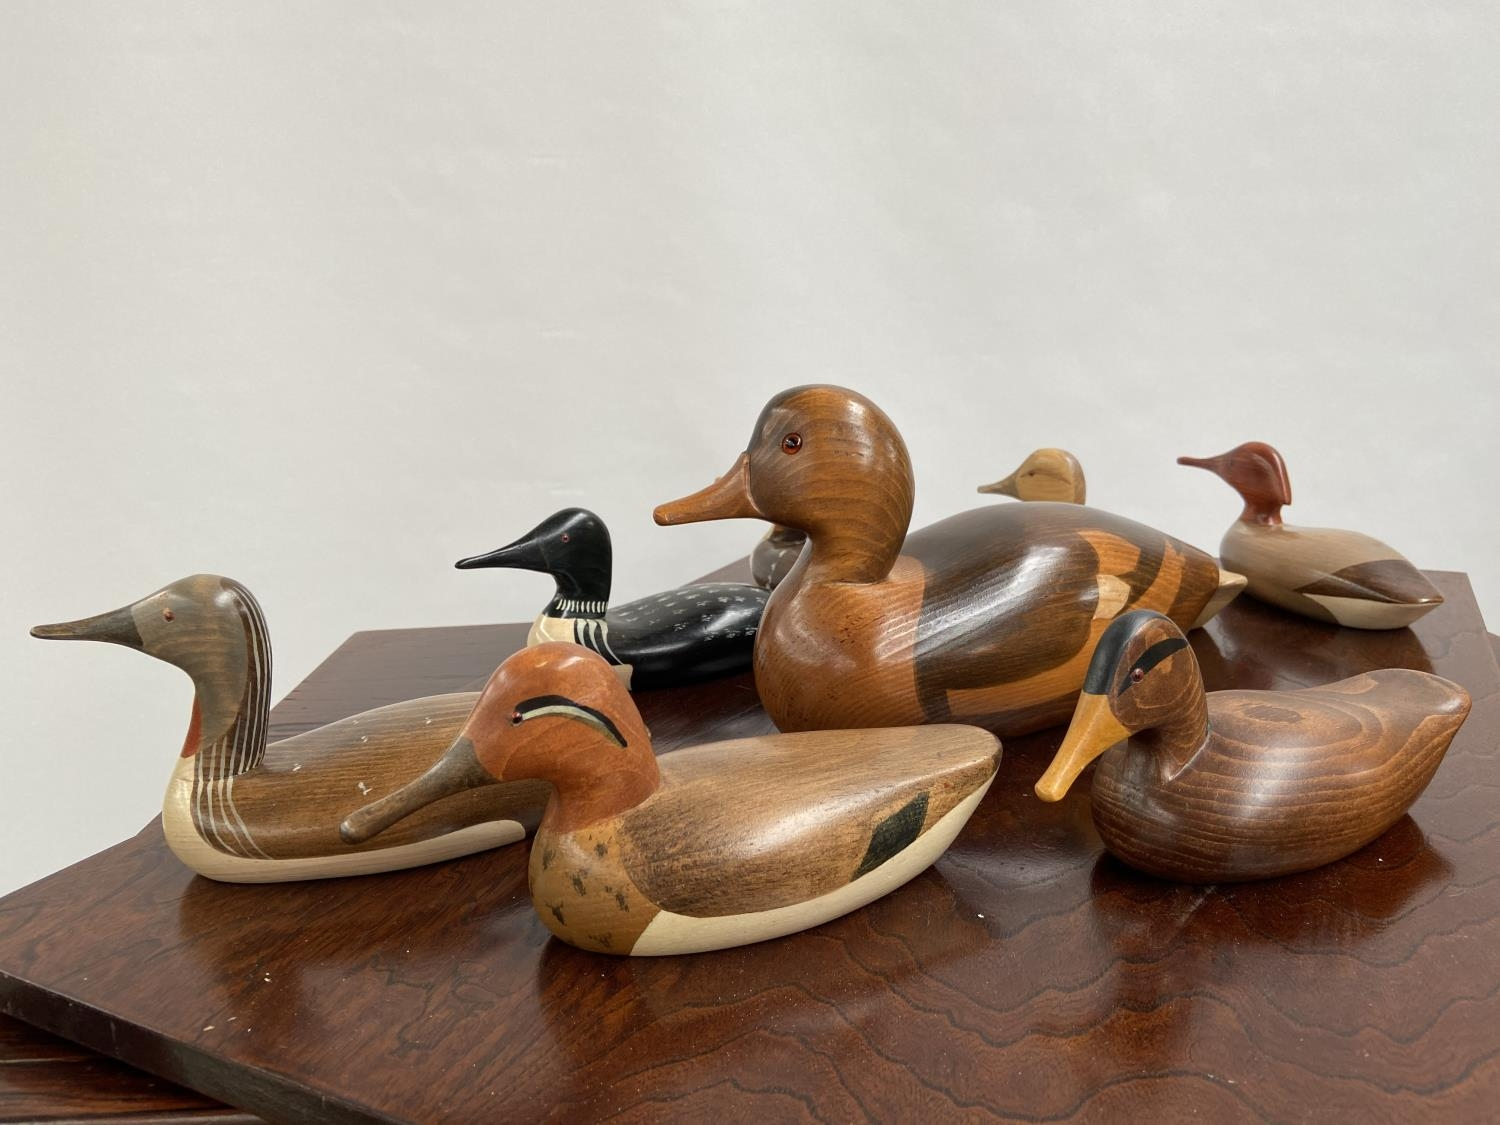 A Collection of hand carved wooden duck decoy sculptures by Jim Harkness. - Image 5 of 11